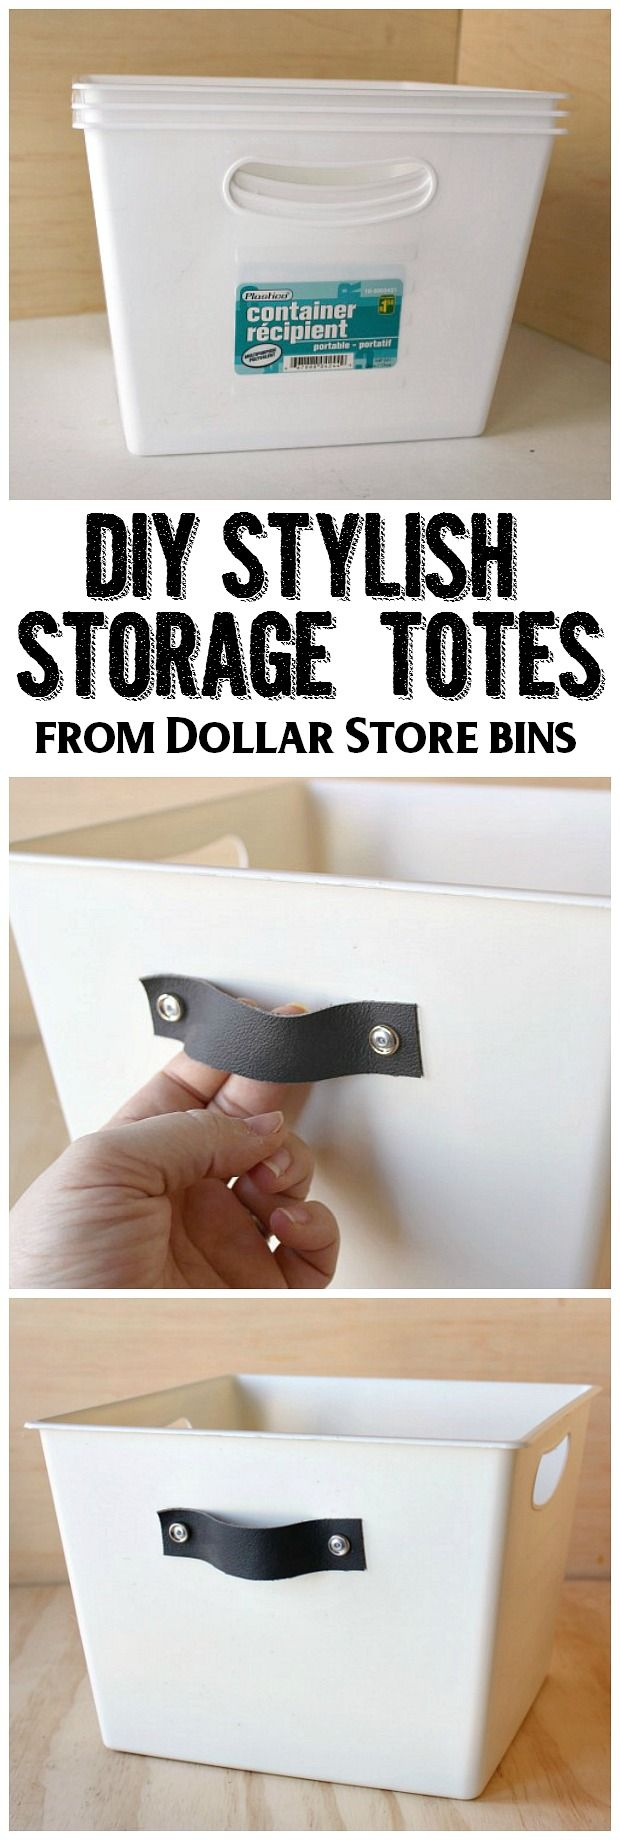 Dress up those boring dollar store bins with this easy tutorial for stylish DIY storage totes. Perfect for front entry storage, toy storage, pantry storage and more!